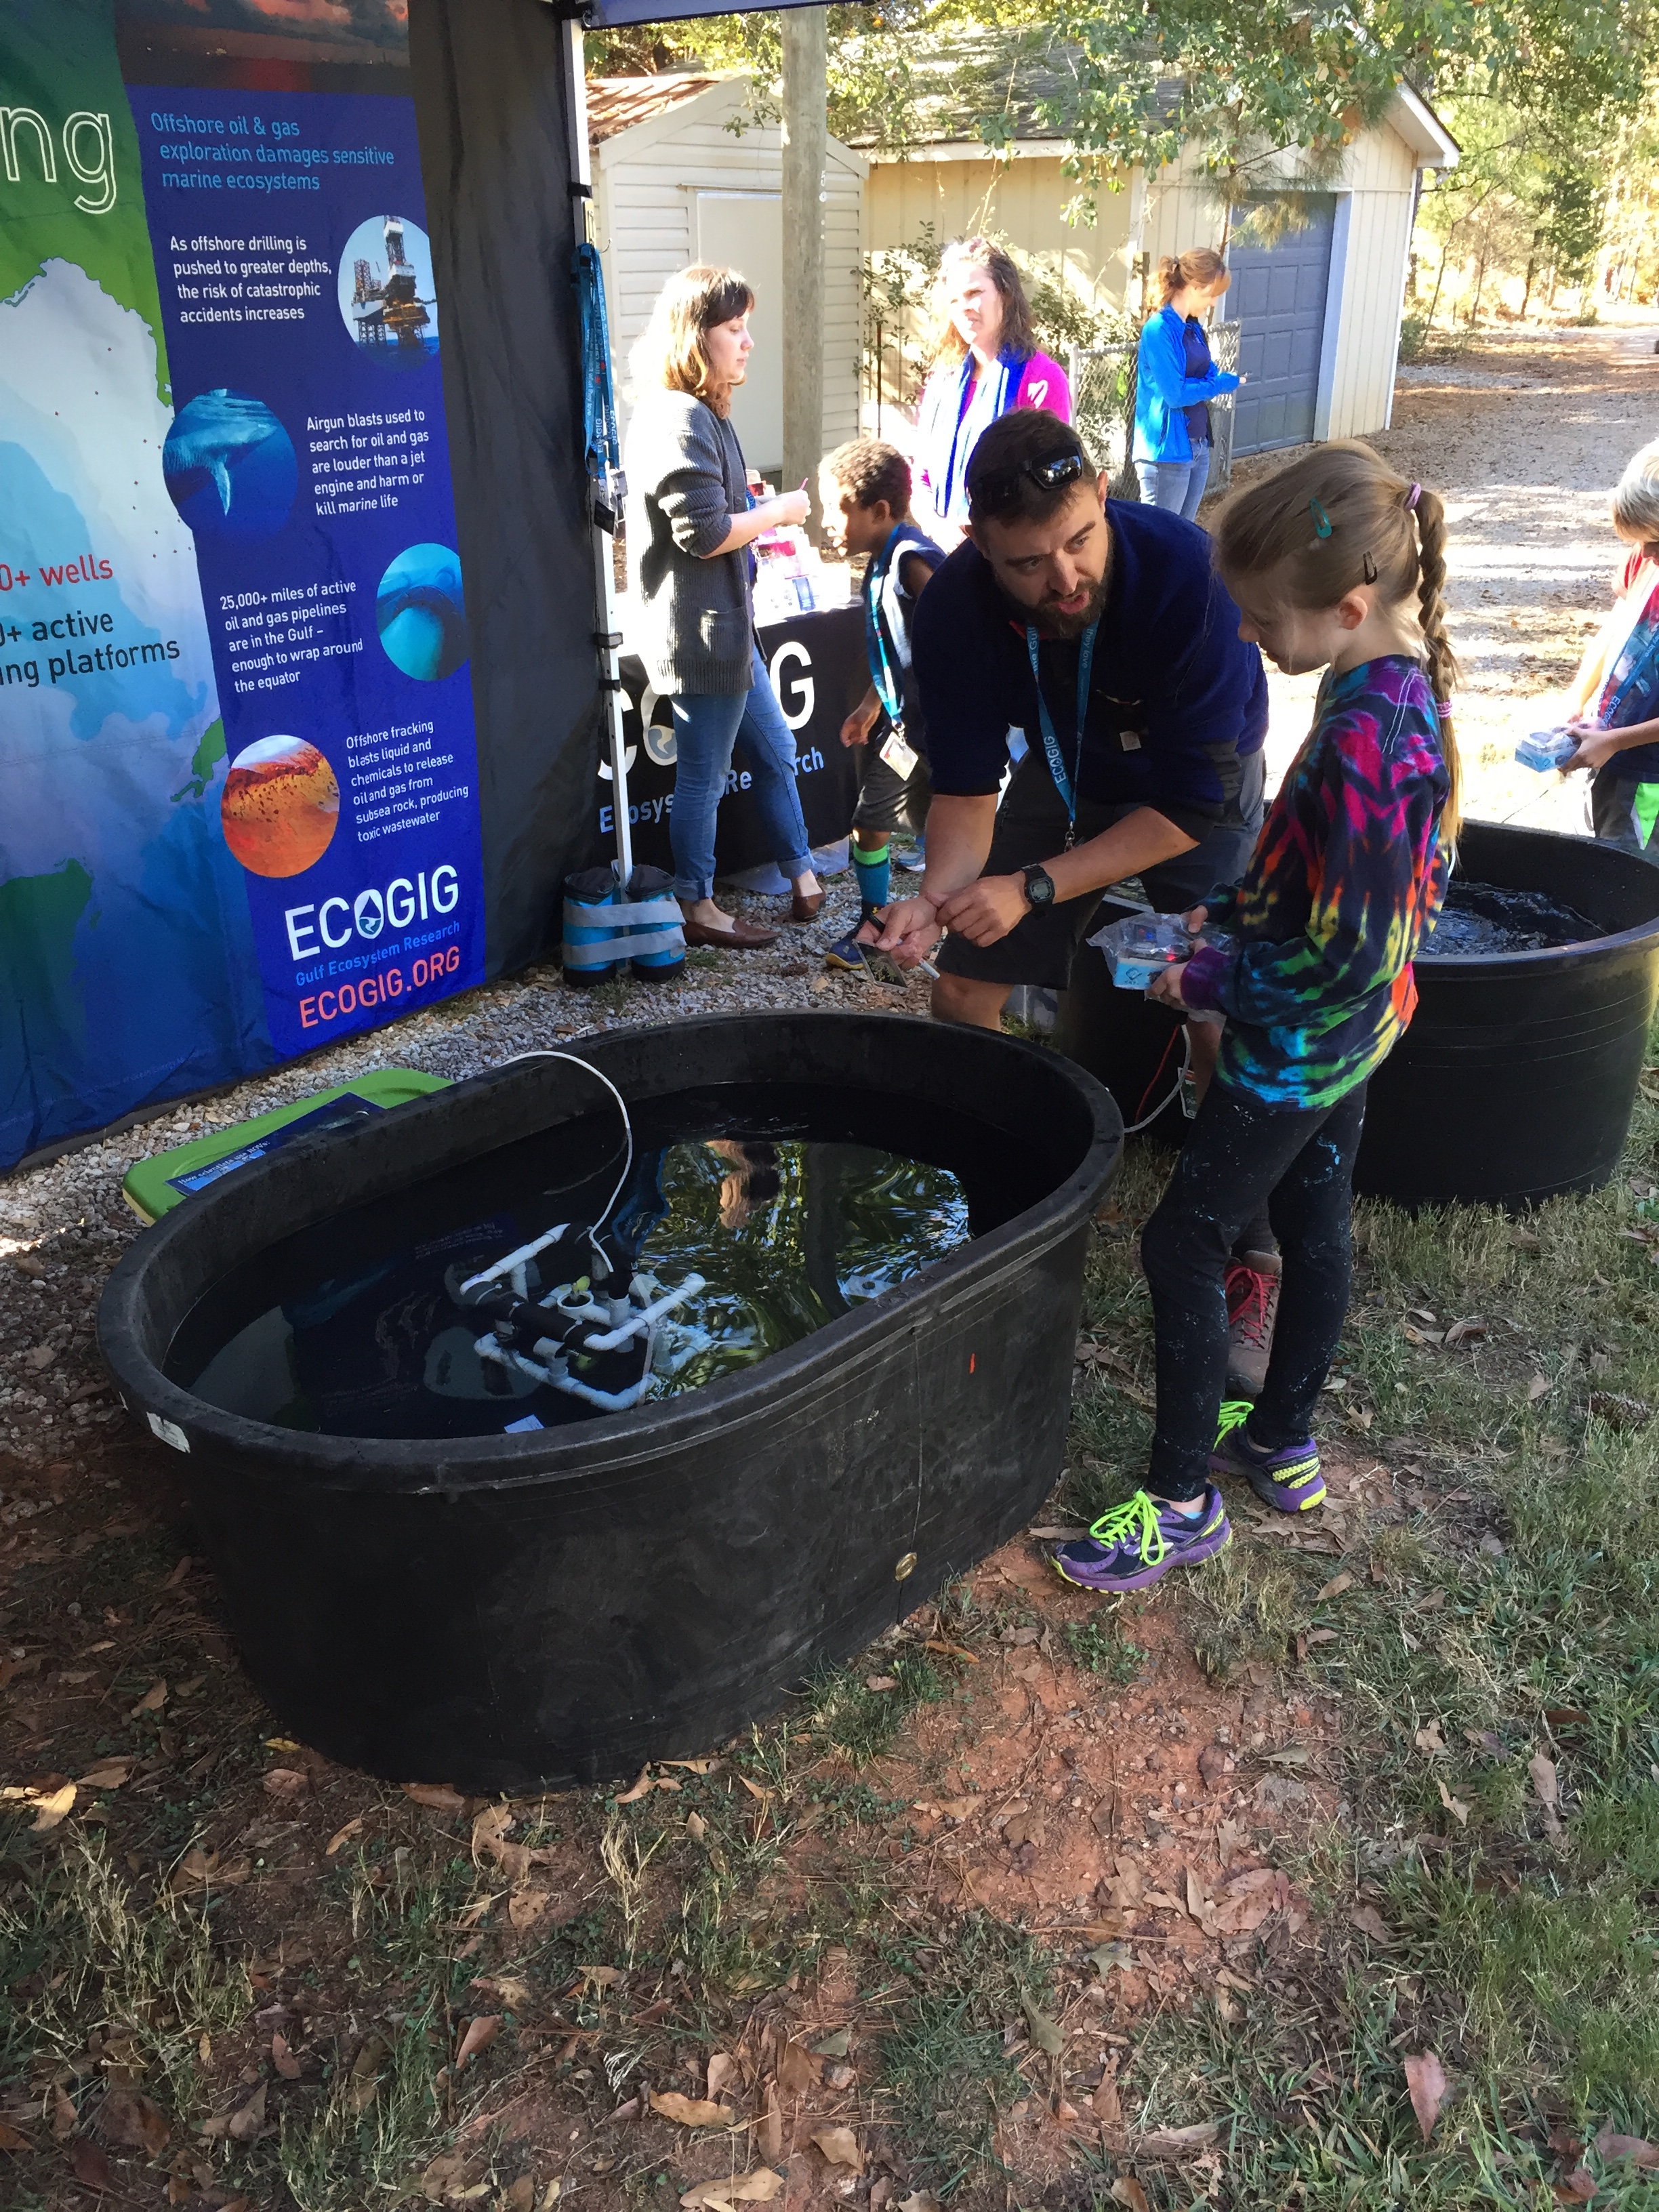 <div style='color:#000000;'><br /><br /><h2>2016 Athens Montessori Fall Festival. ECOGIG PhD student Ryan Sibert showing a budding ROV pilot what she captured in the tank!</h2>(c) ECOGIG</div>